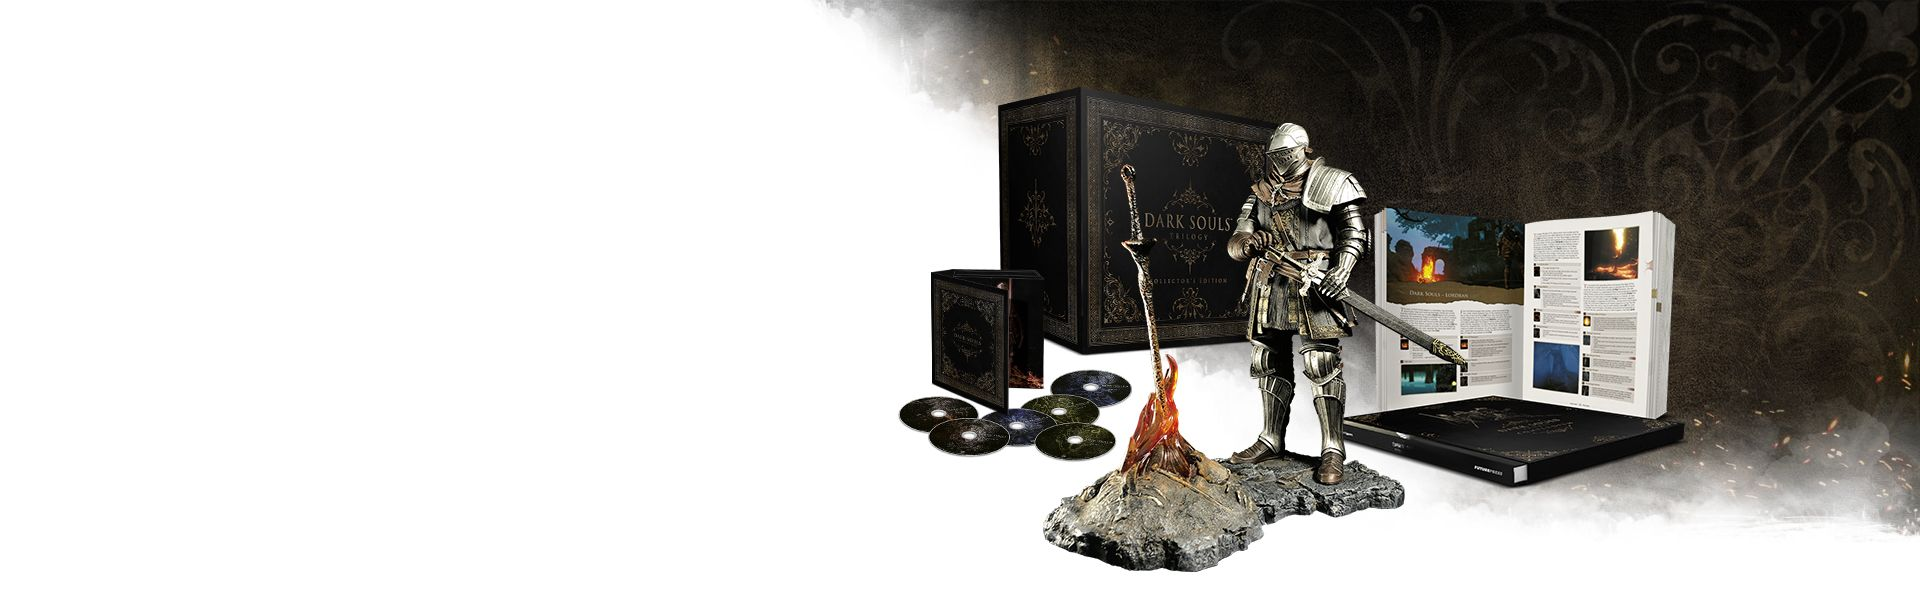 DARK SOULS TRILOGY - COLLECTOR'S EDITION